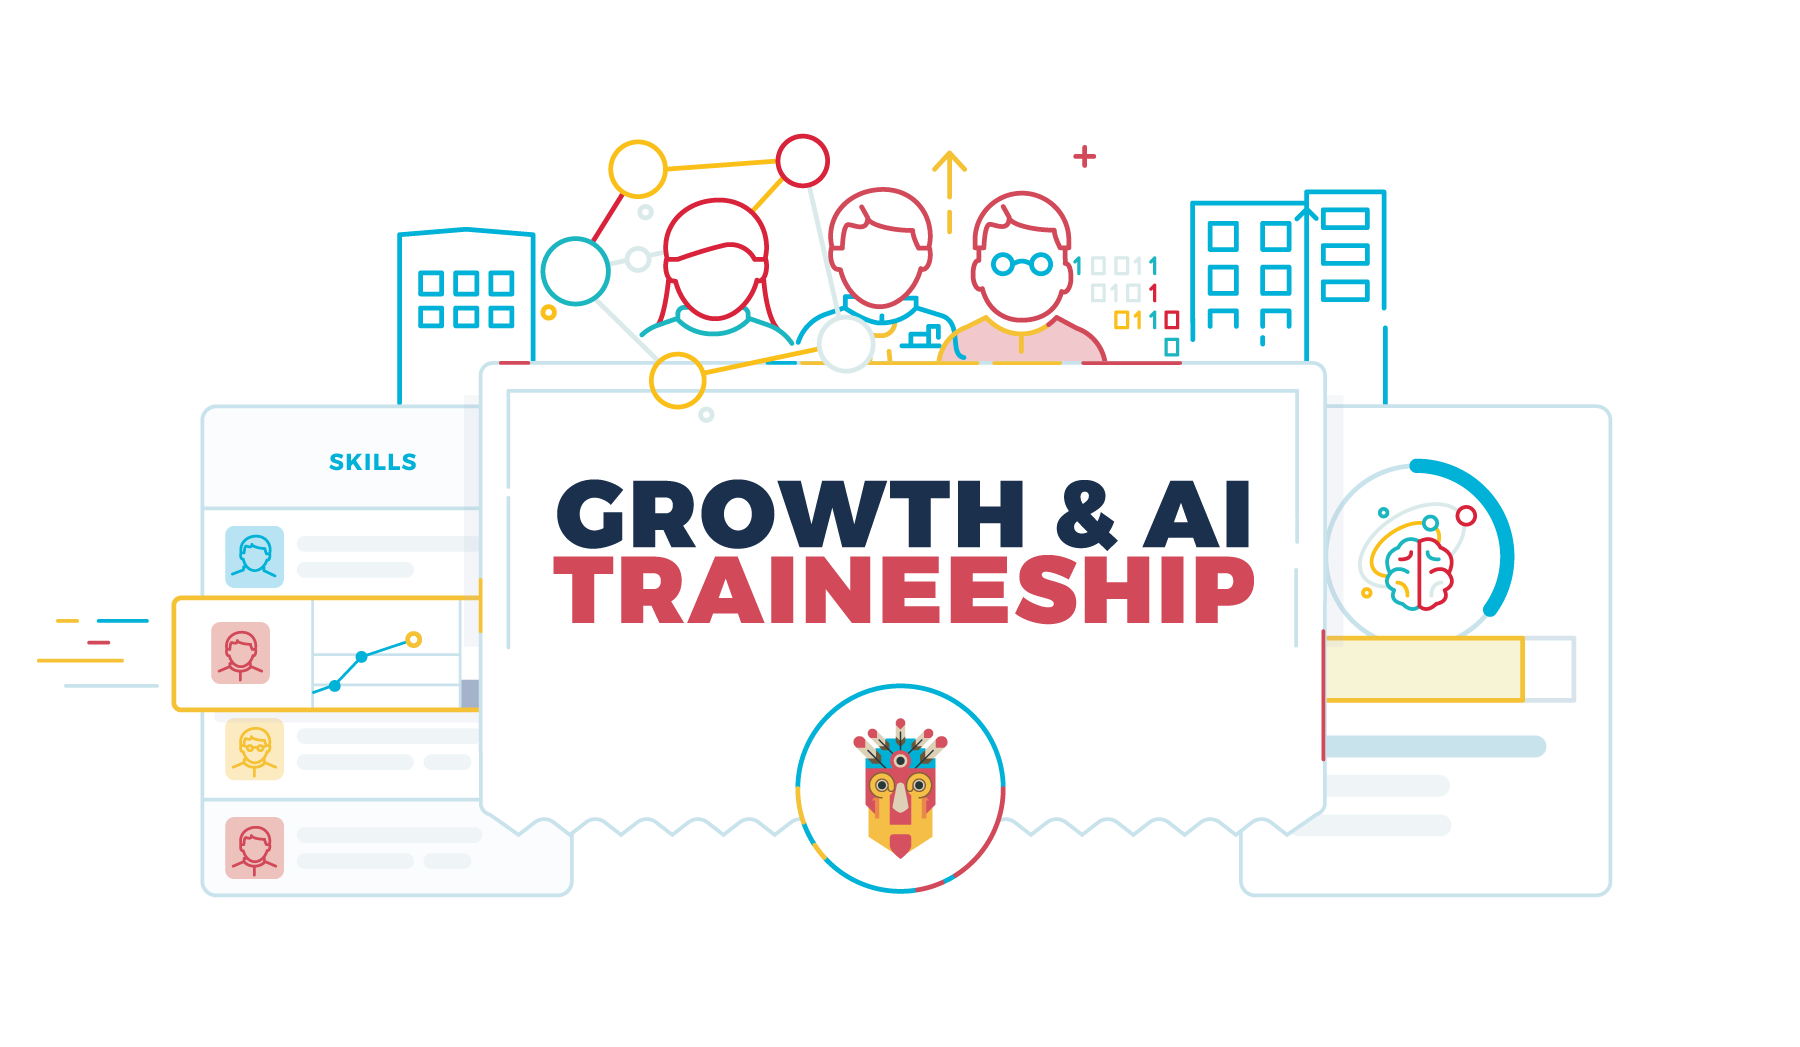 web-6-month-growth-ai-traineeship-1-transparent.png